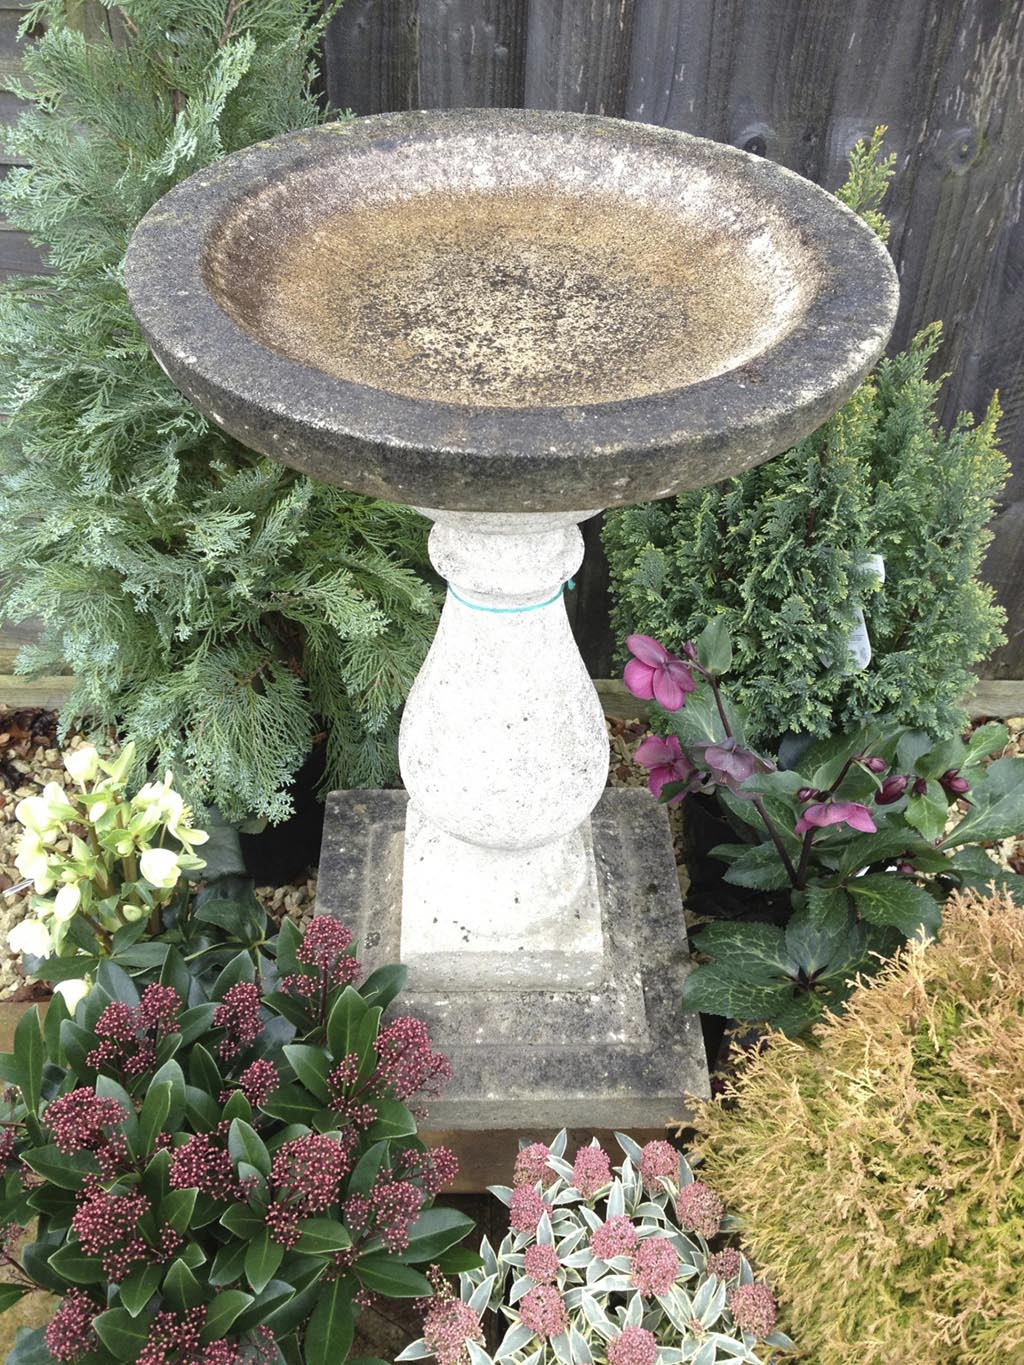 Stone Bird Bath with Sundial